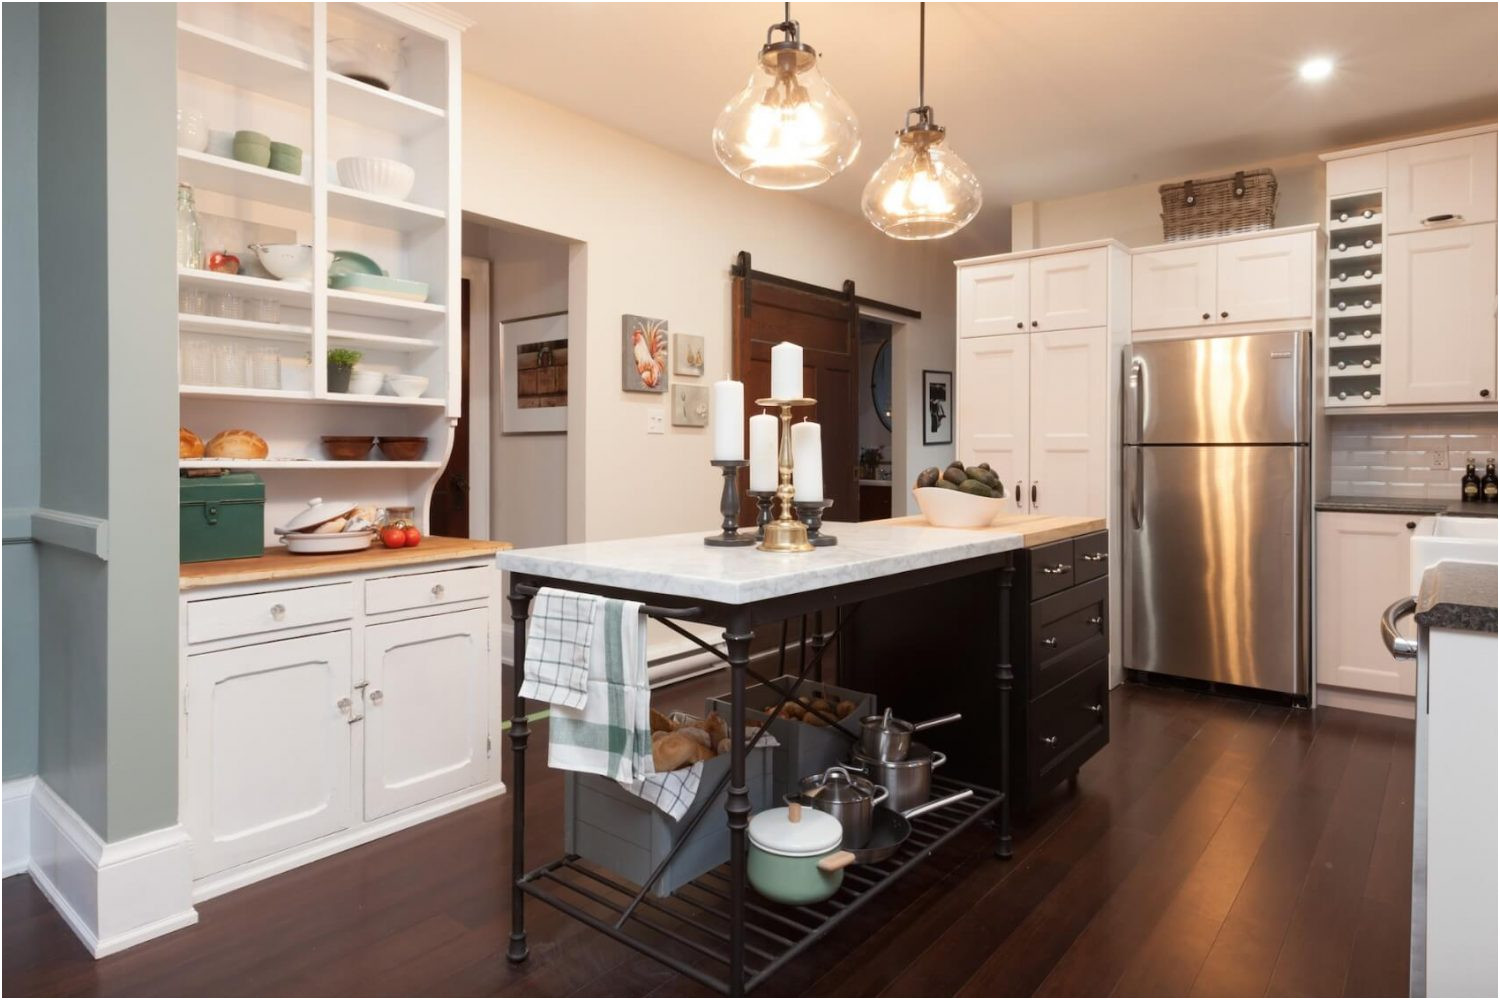 What to Do when Renovating Your Kitchen Kitchen Remodel Do S and Don Ts Scott S Reno to Reveal